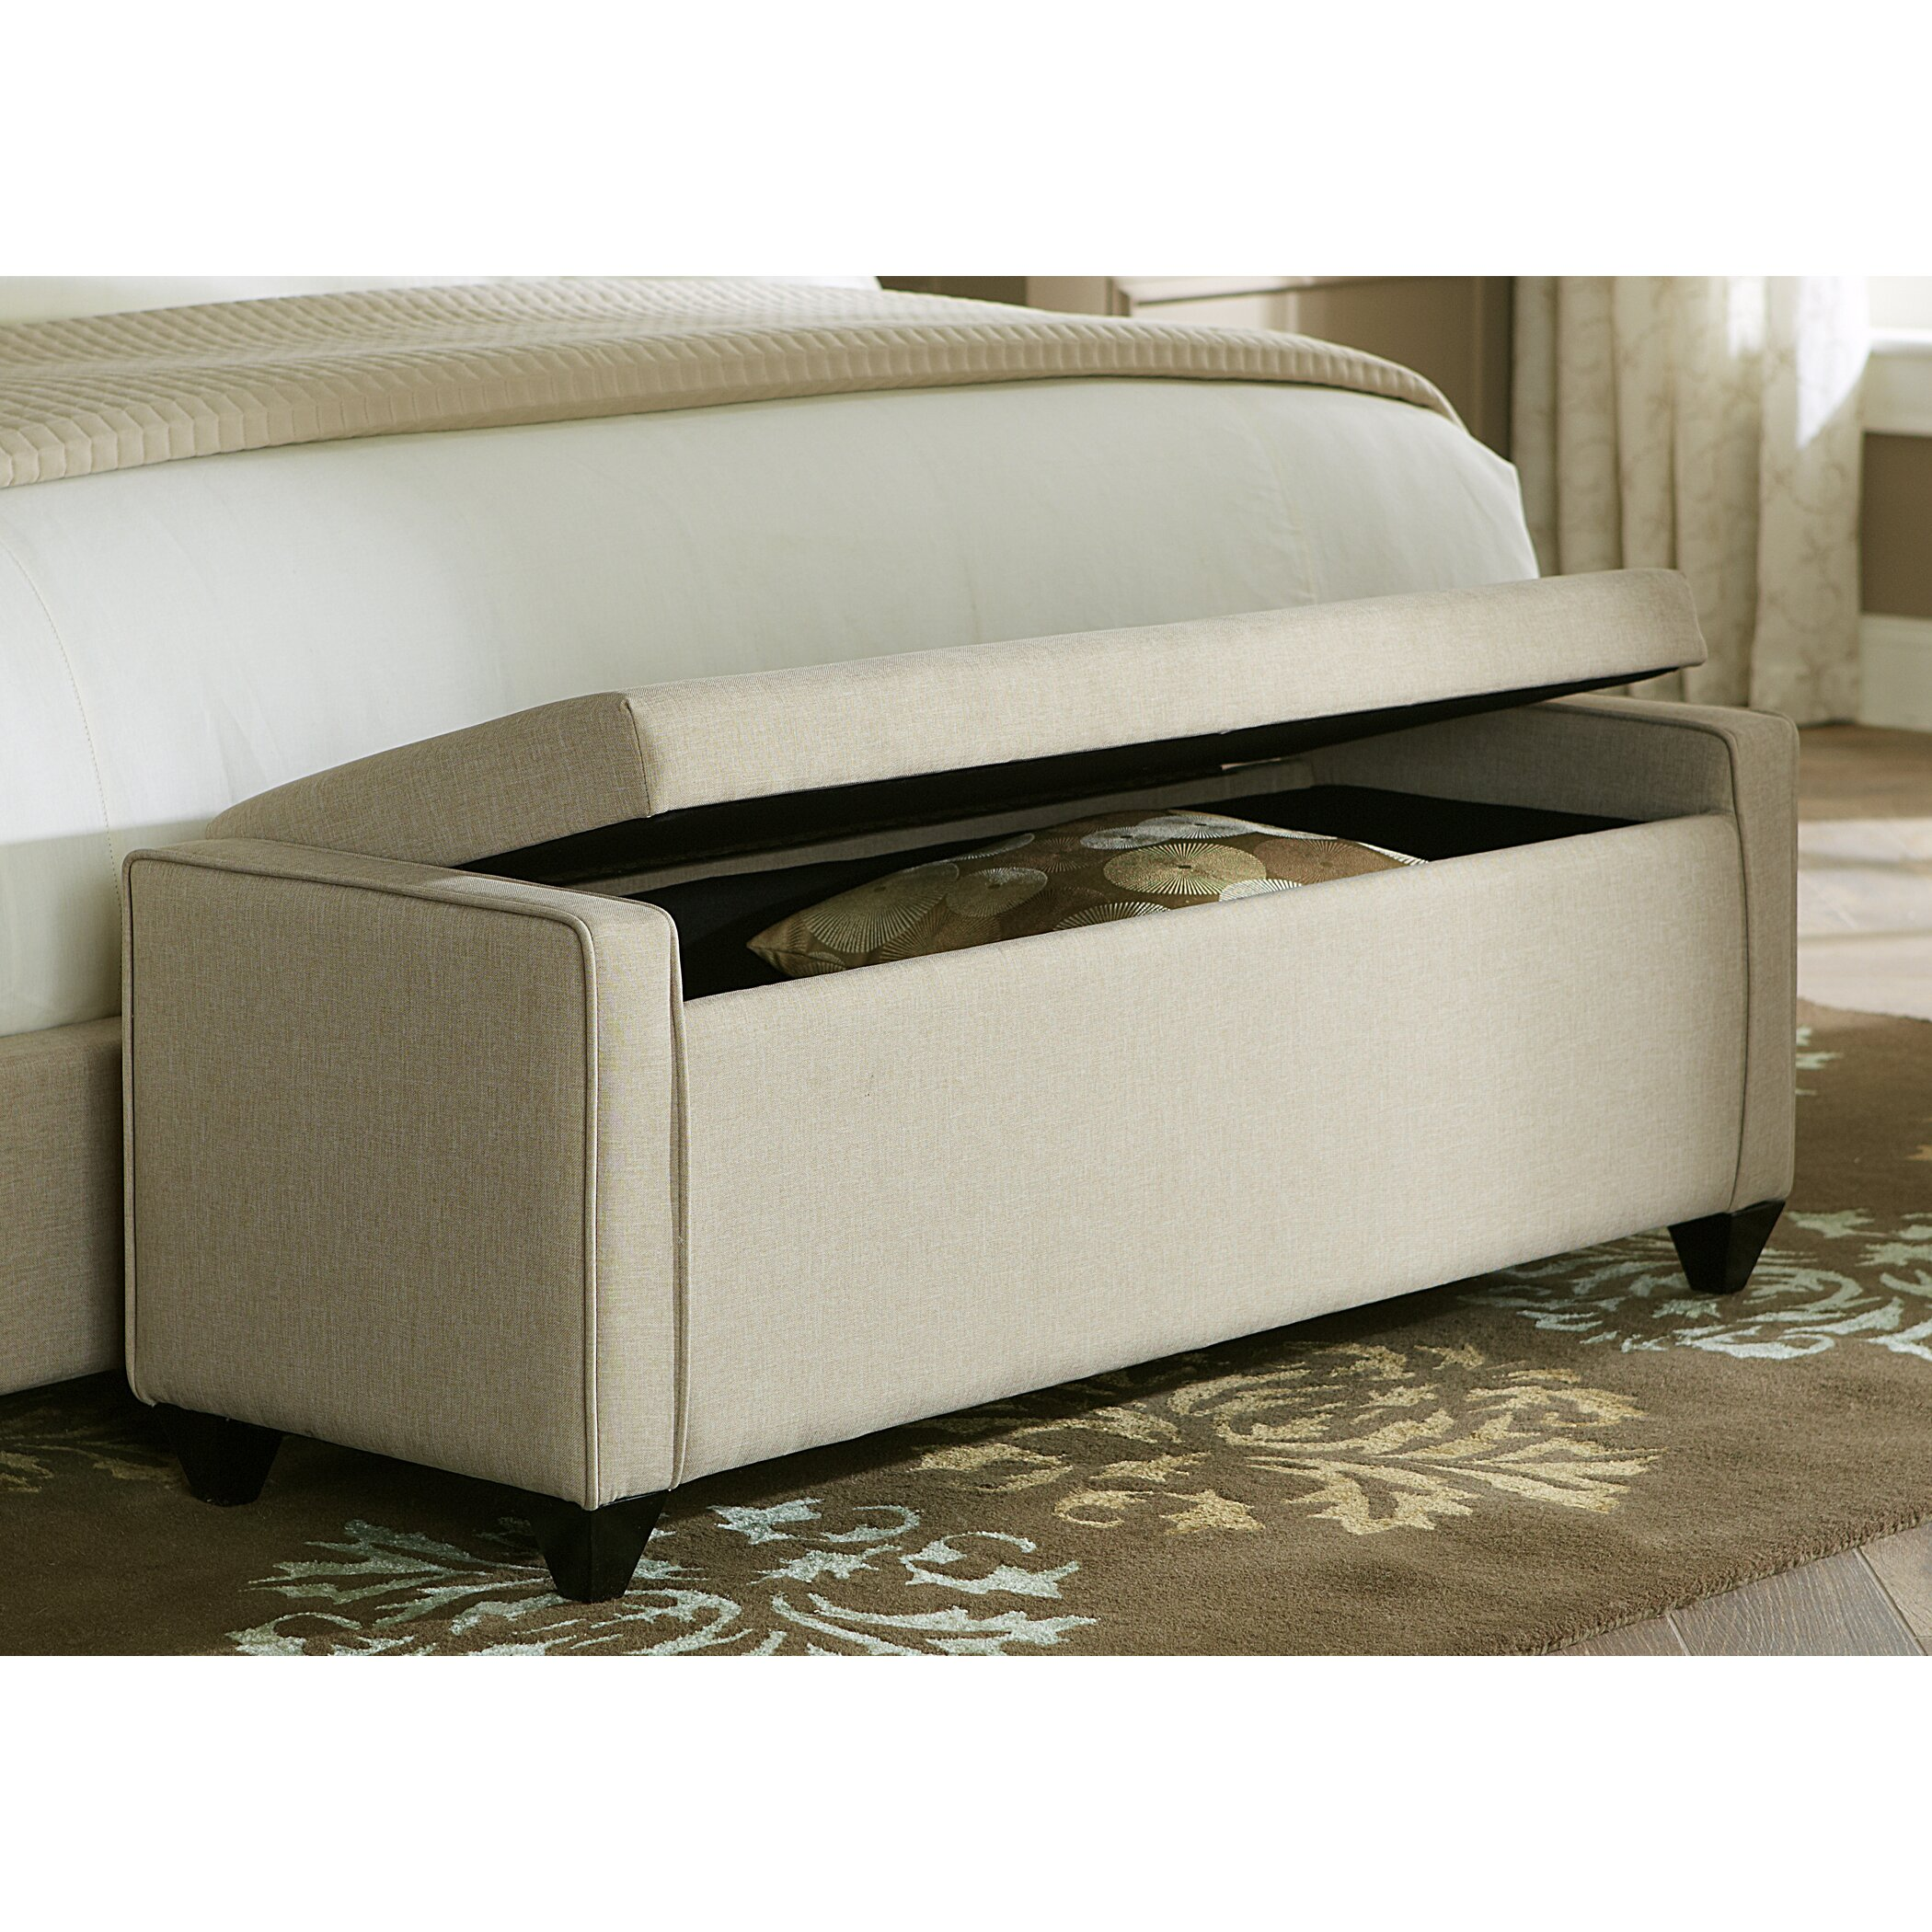 Liberty furniture upholstered storage bedroom bench reviews wayfair Bed bench storage